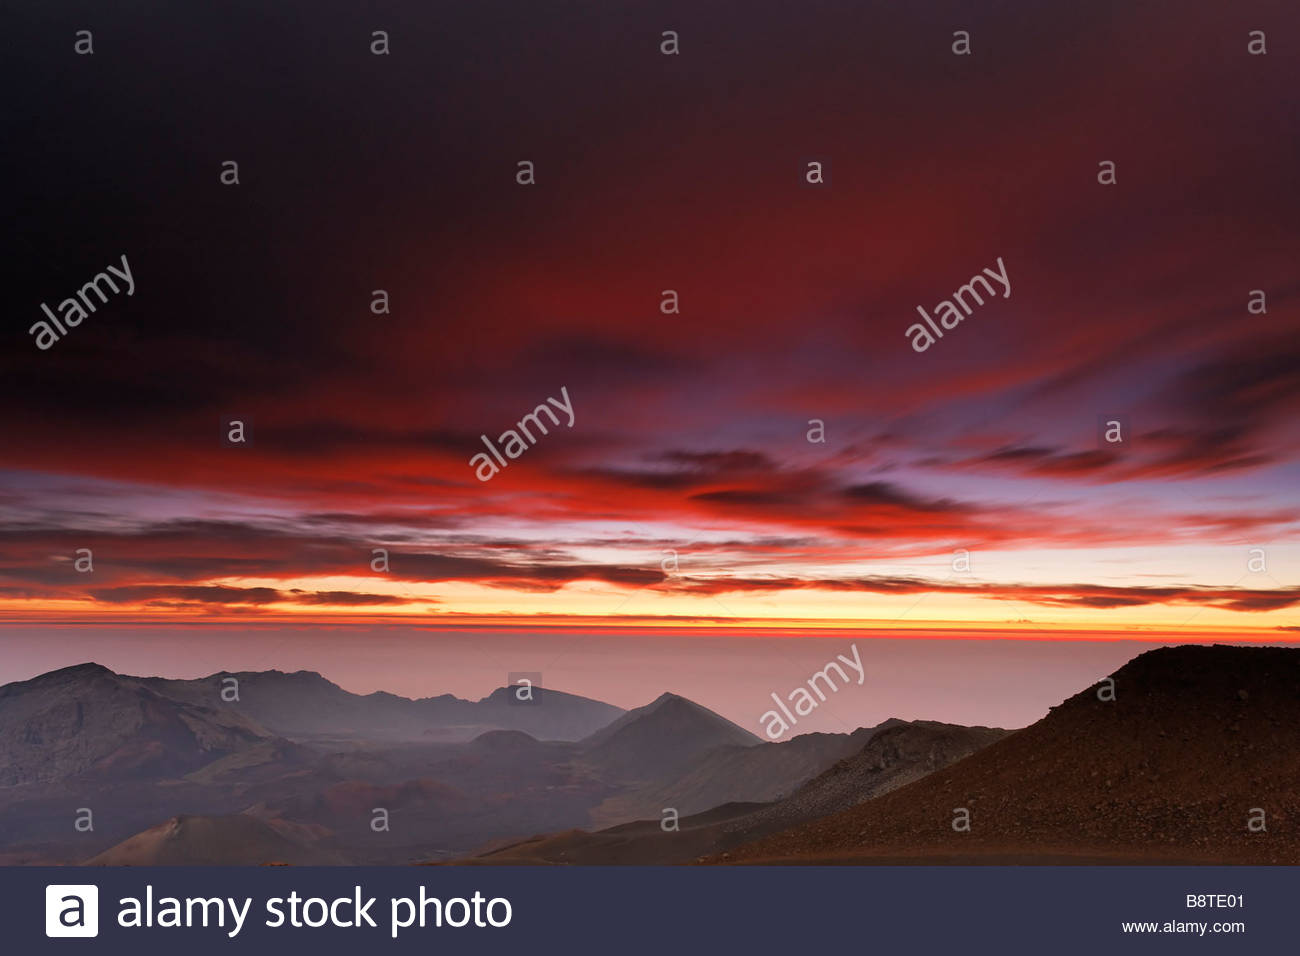 An approaching storm results in a fiery sunrise over the Haleakala crater in Haleakala National Park, Maui, Hawaii. - Stock Image